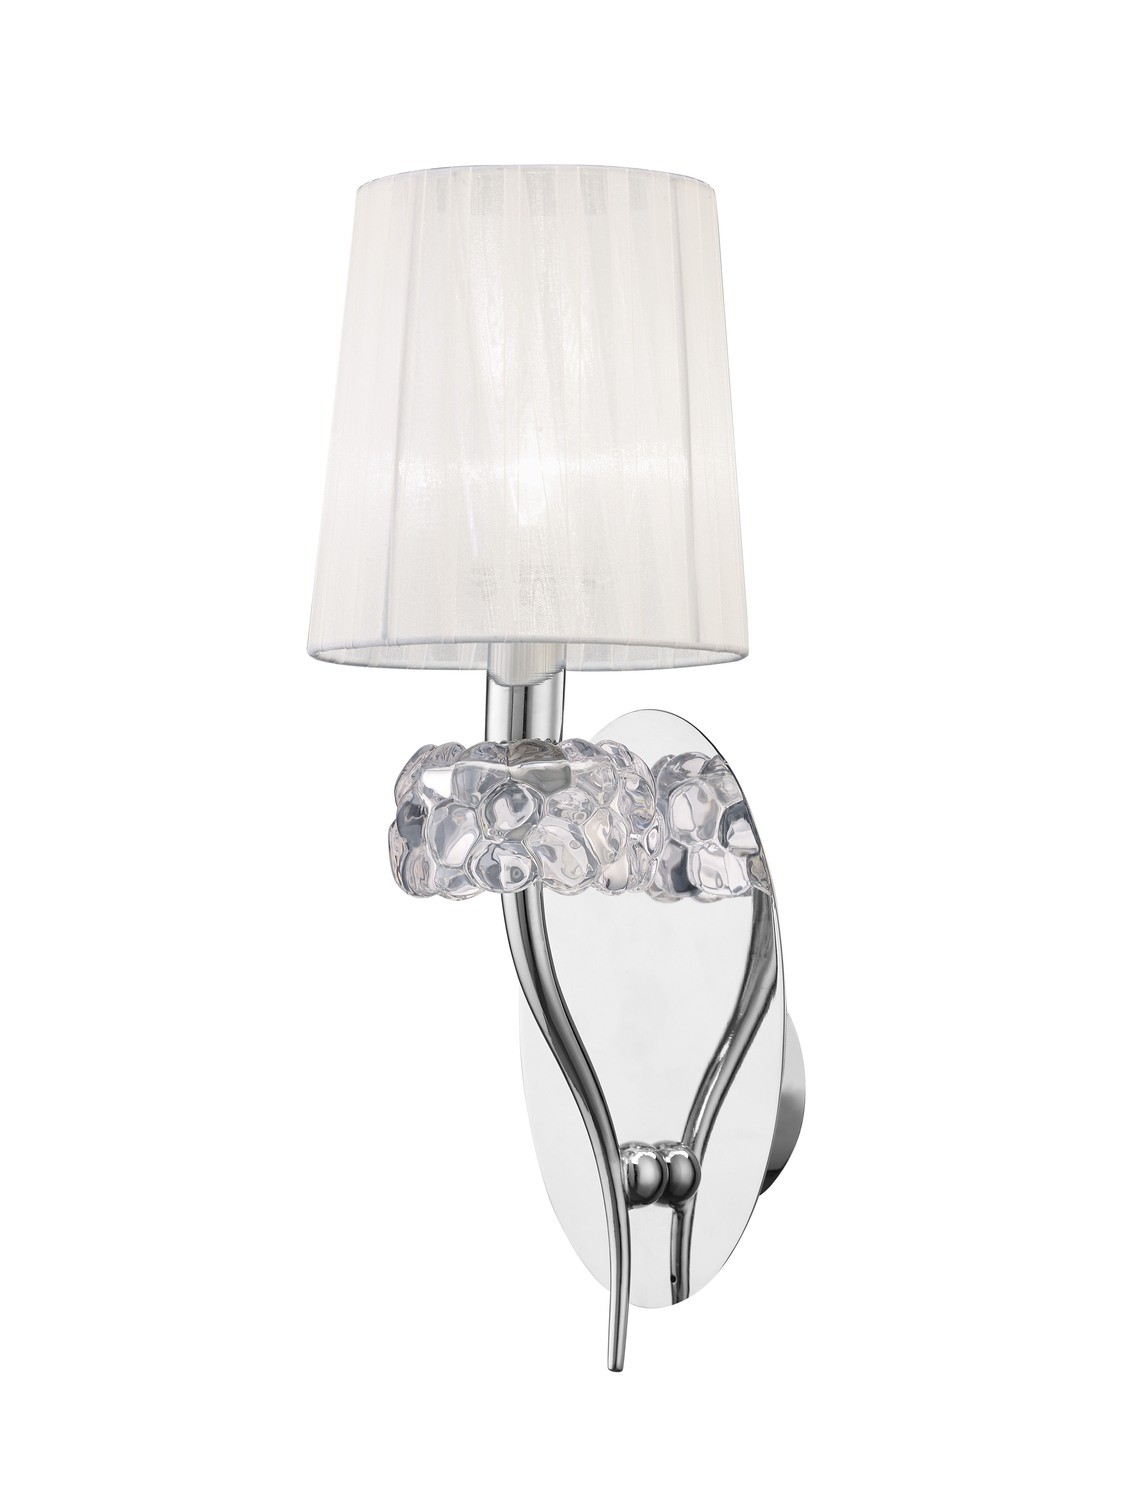 Loewe Wall Lamp Switched 2 Light E14, Antique Brass With White Shade